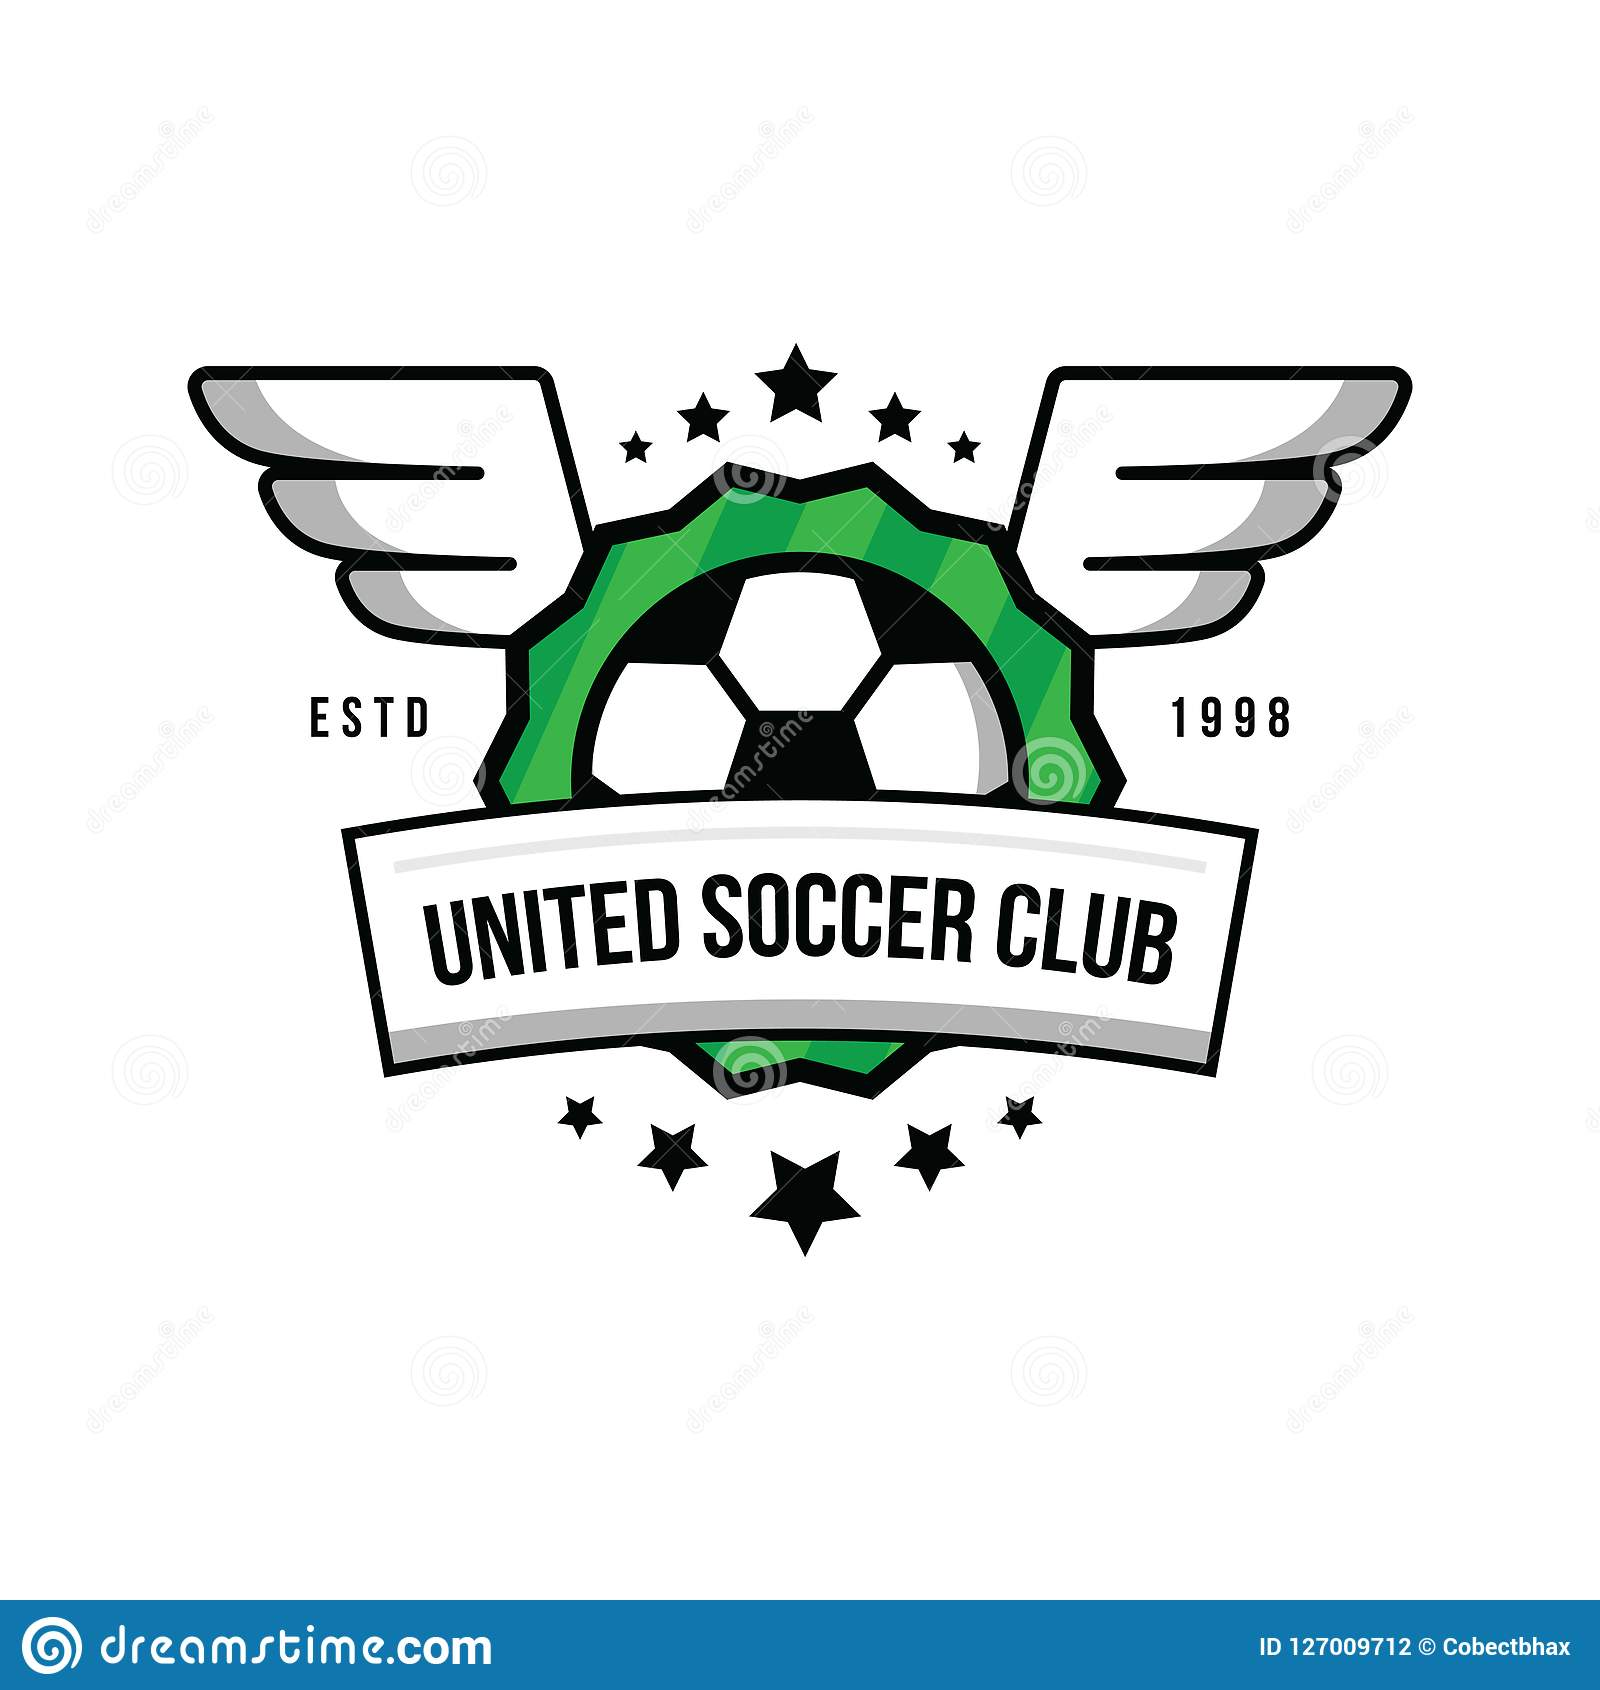 Soccer team logo with a ball and wings on a green background.Badge football team. Ball, stars, wings, shield, green lawn